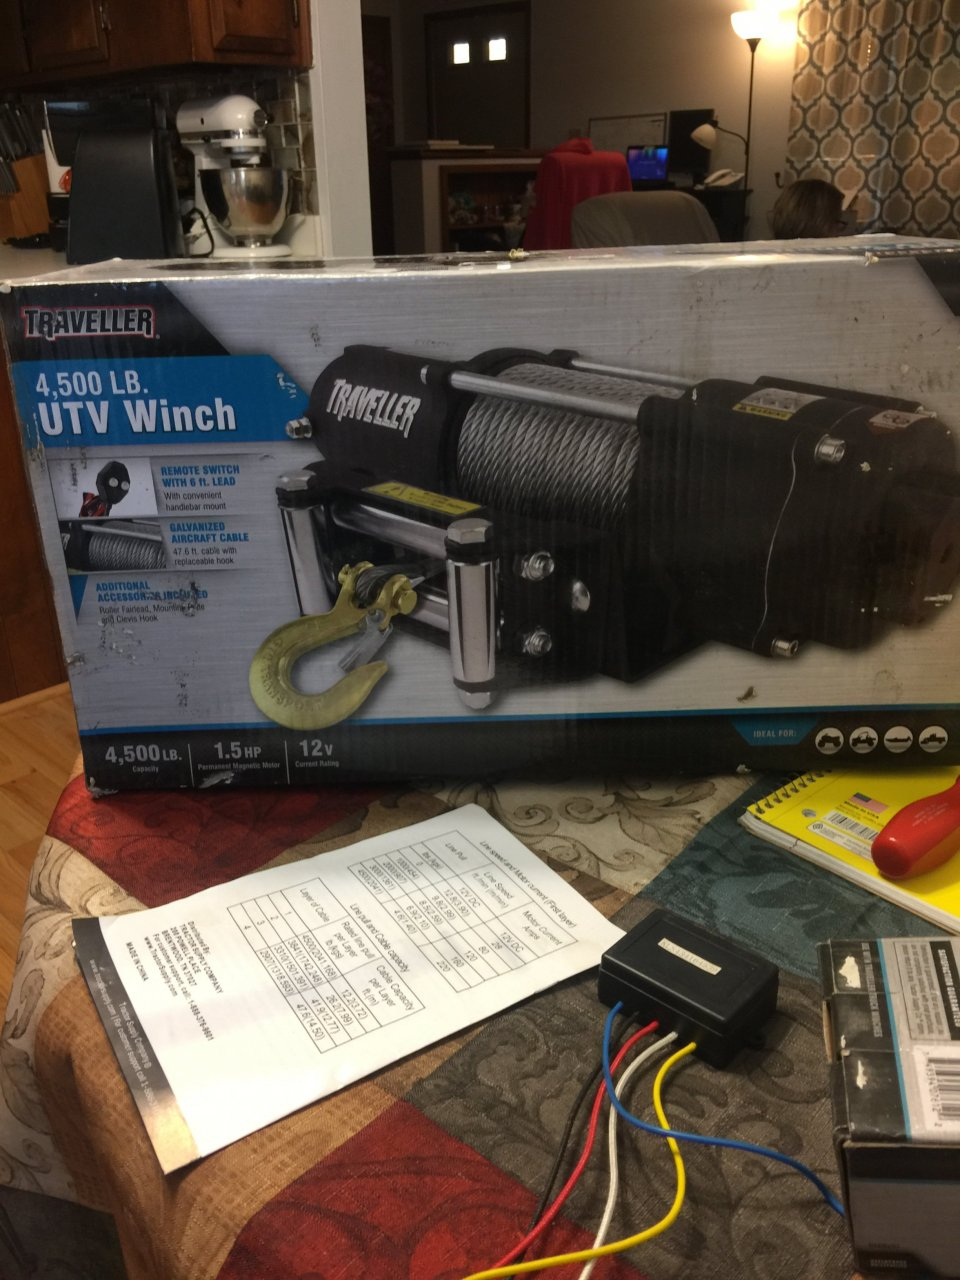 I Have A Traveller 4500 Lb Winch Model # 1078311 And Need To Know - Traveller Winch Wiring Diagram